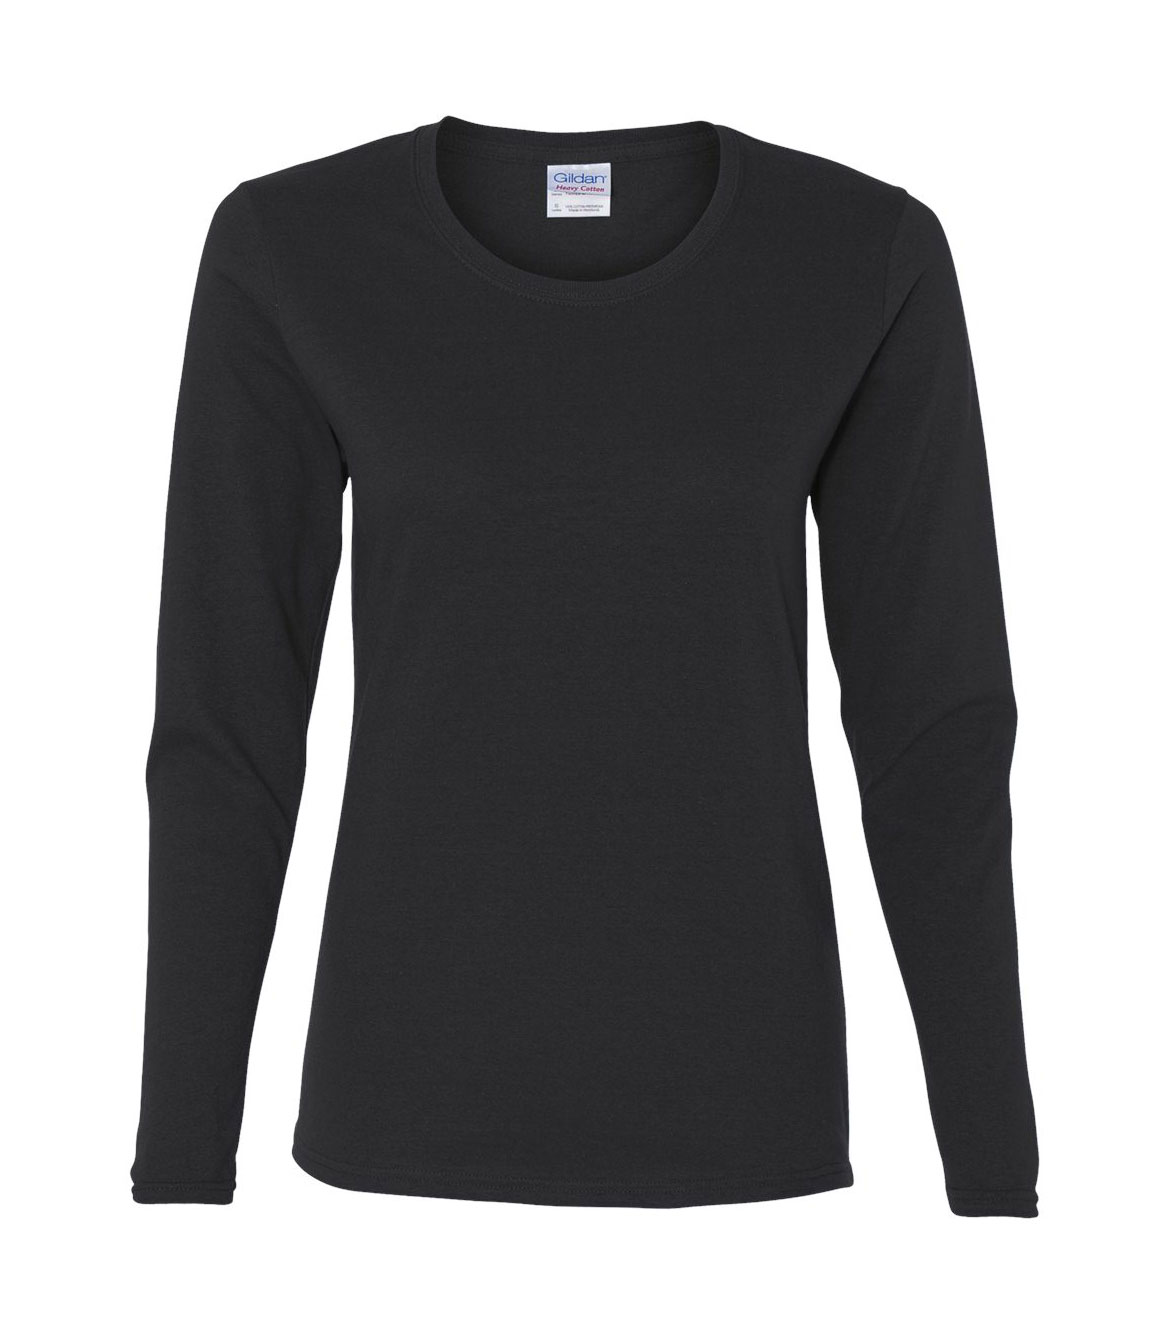 Gildan Ladies Heavy Cotton™ Long Sleeve T-shirt